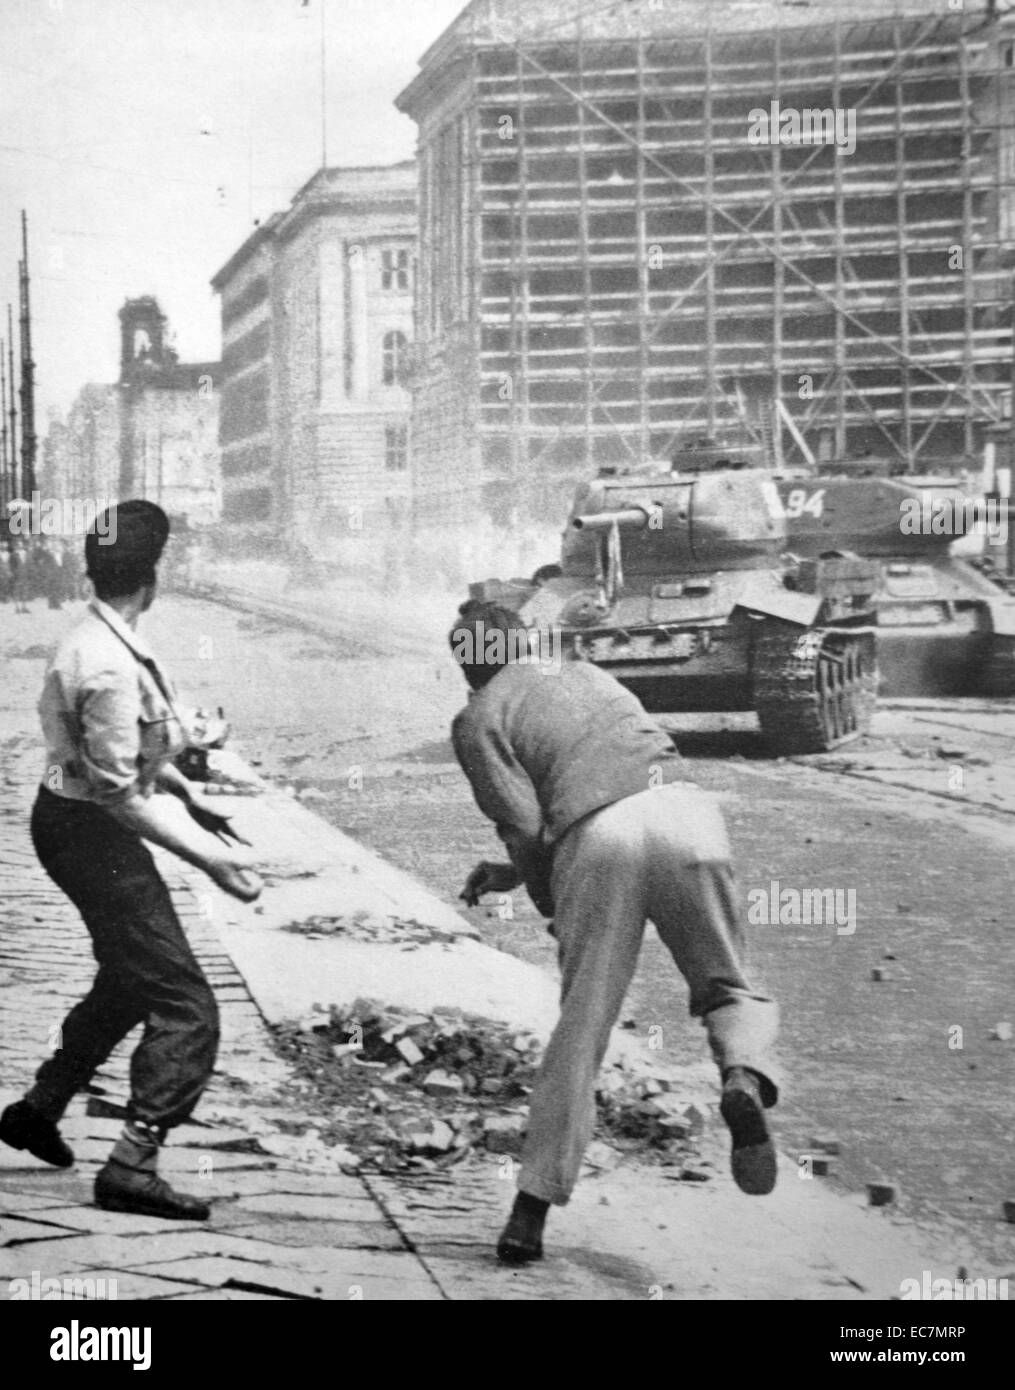 The Uprising of 1953 in East Germany was violently suppressed by tanks of the Group of Soviet Forces - Stock Image